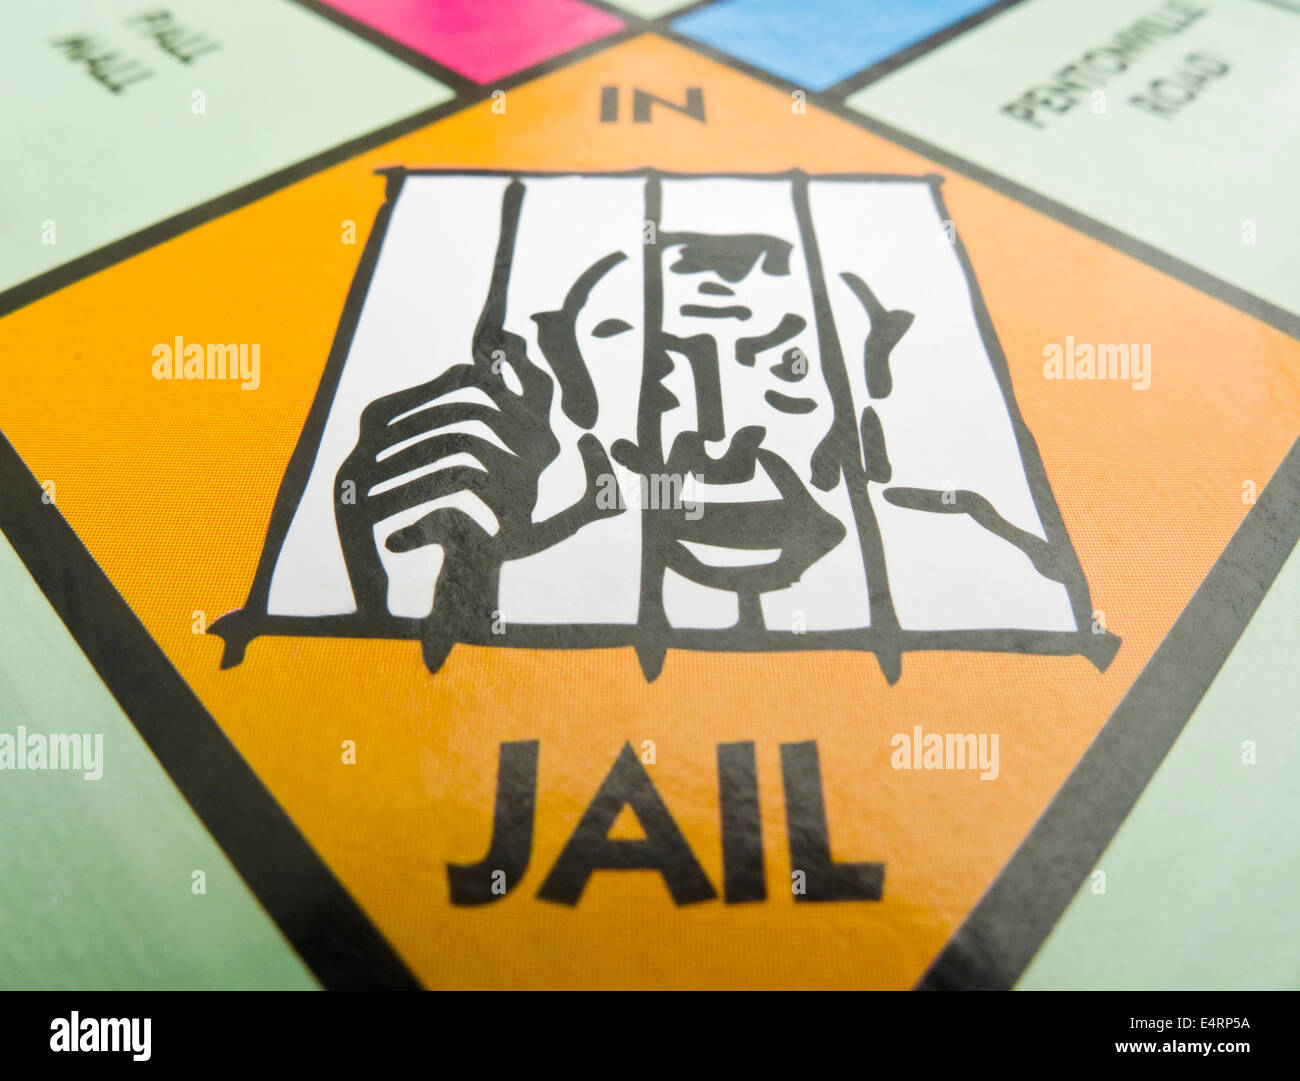 The 'IN JAIL' square on a Monopoly board. - Stock Image